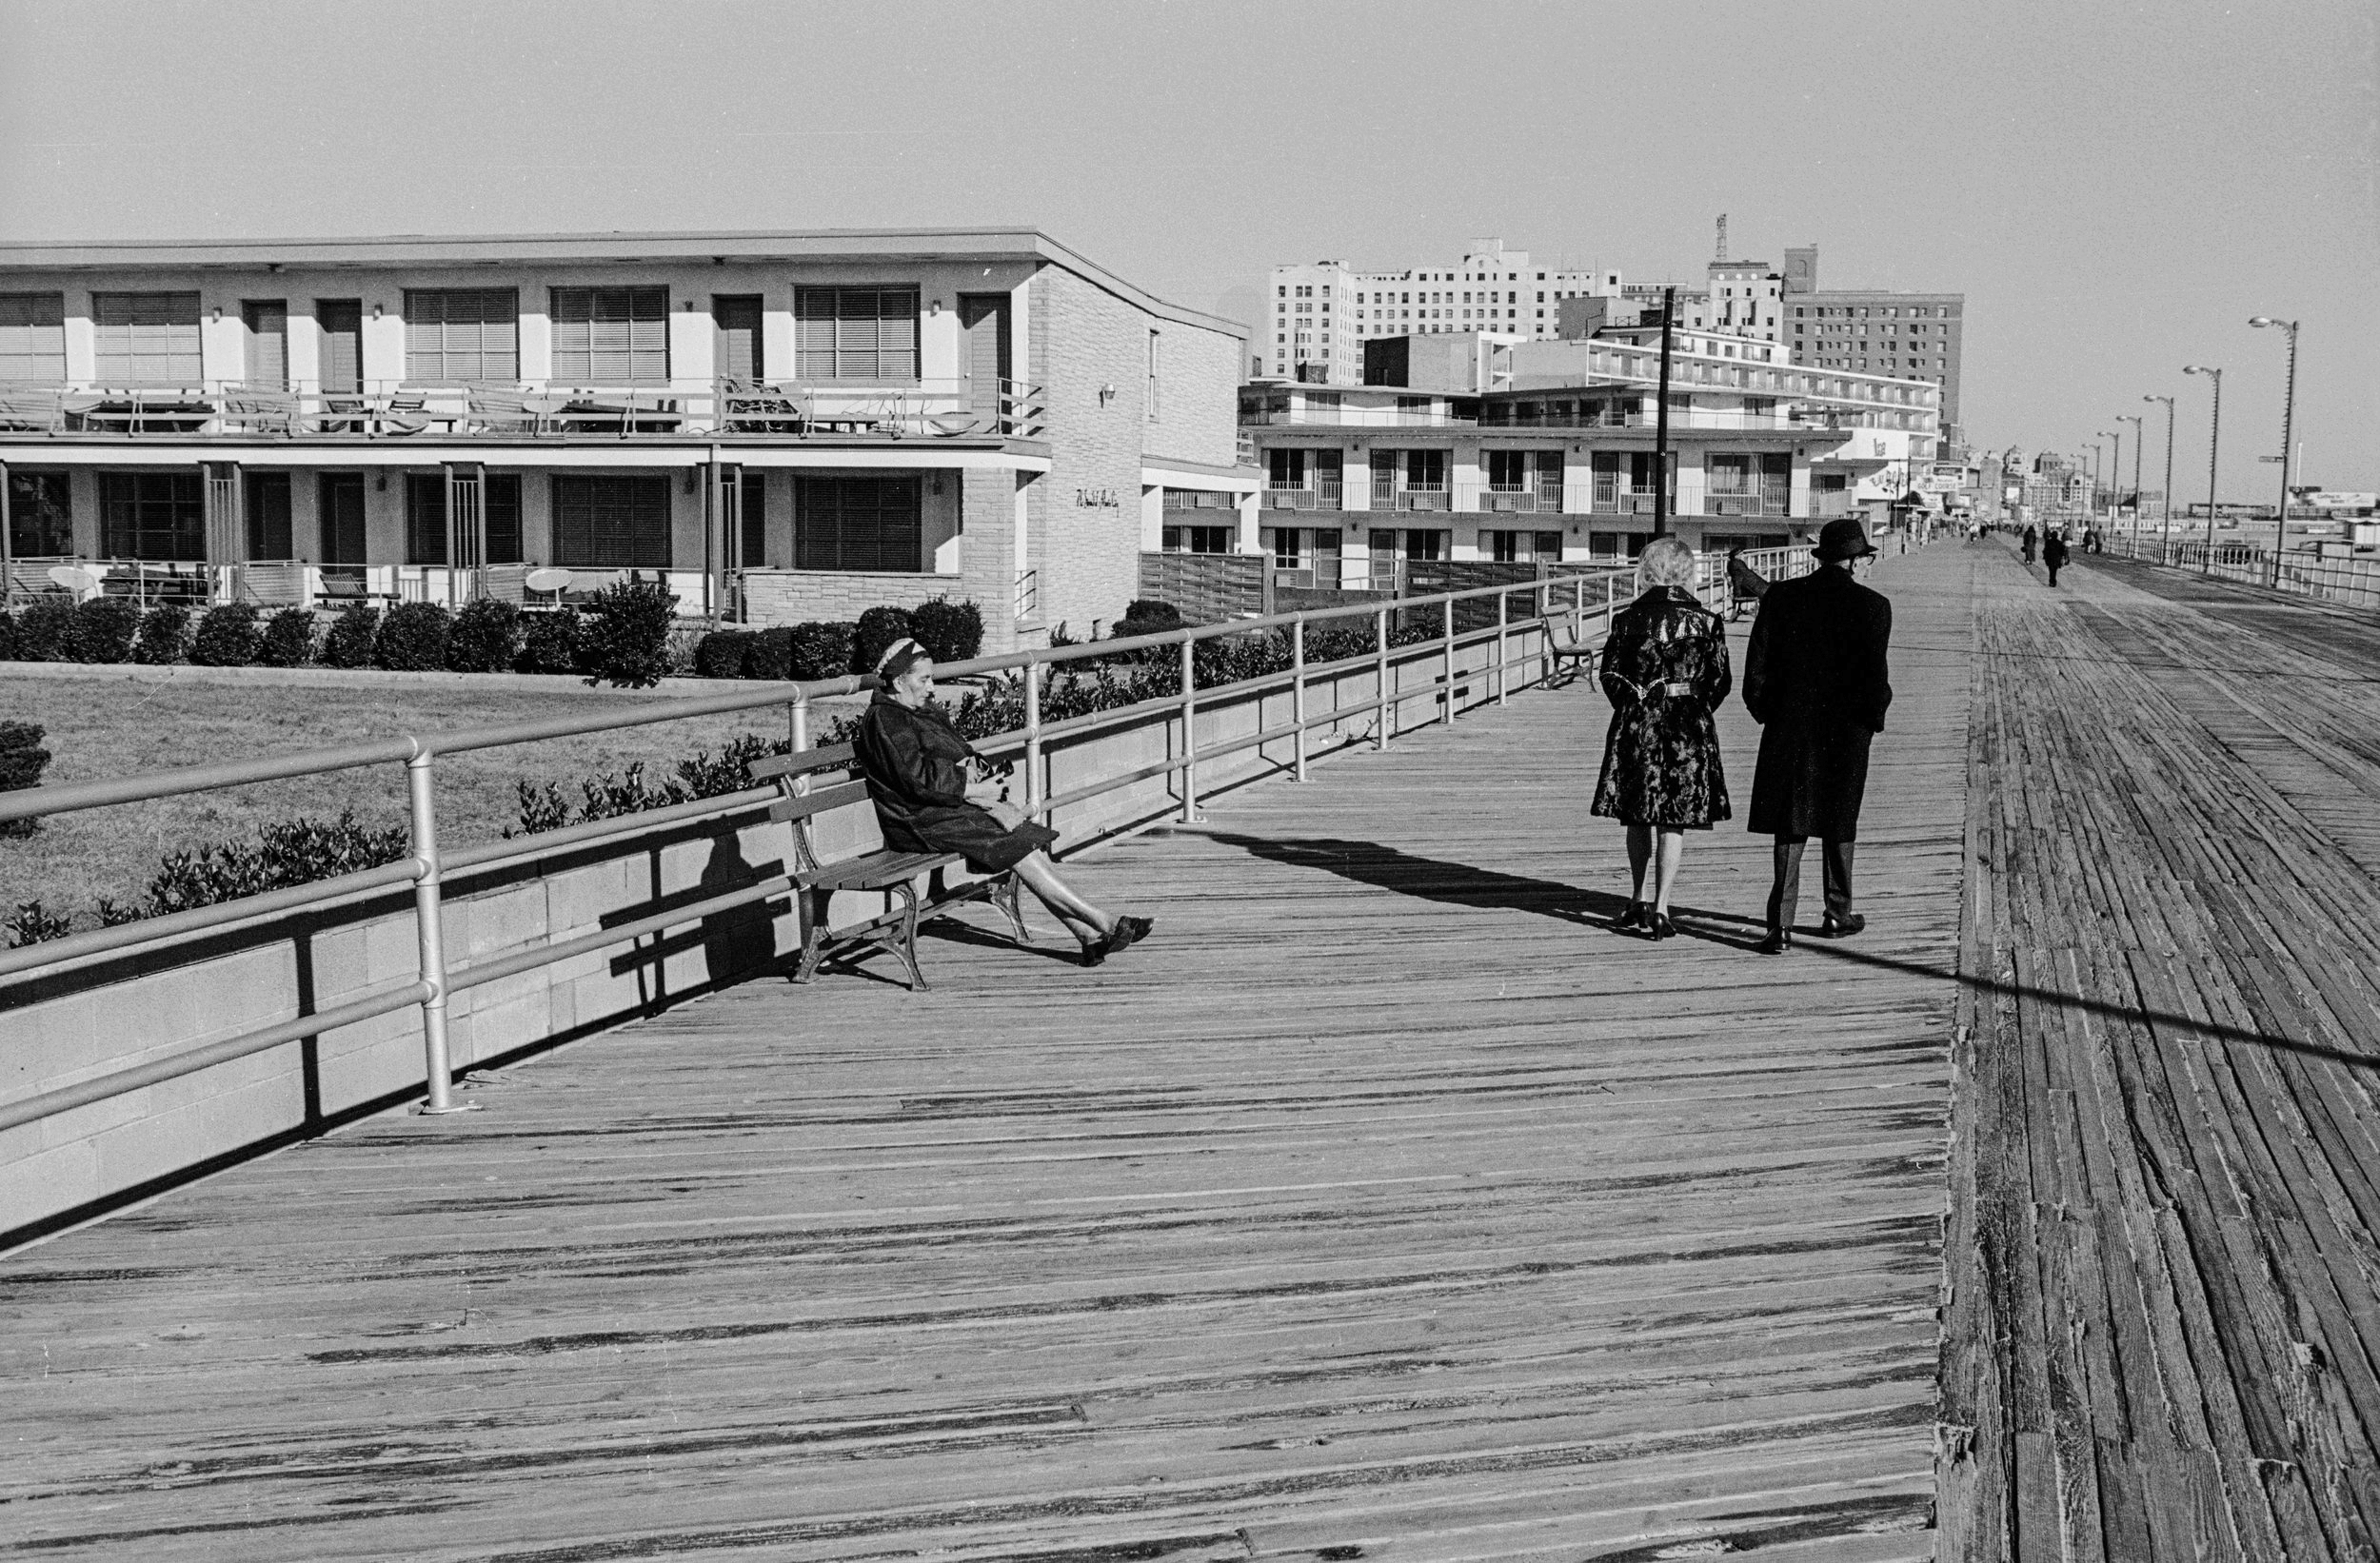 walkersboardwalk.jpg